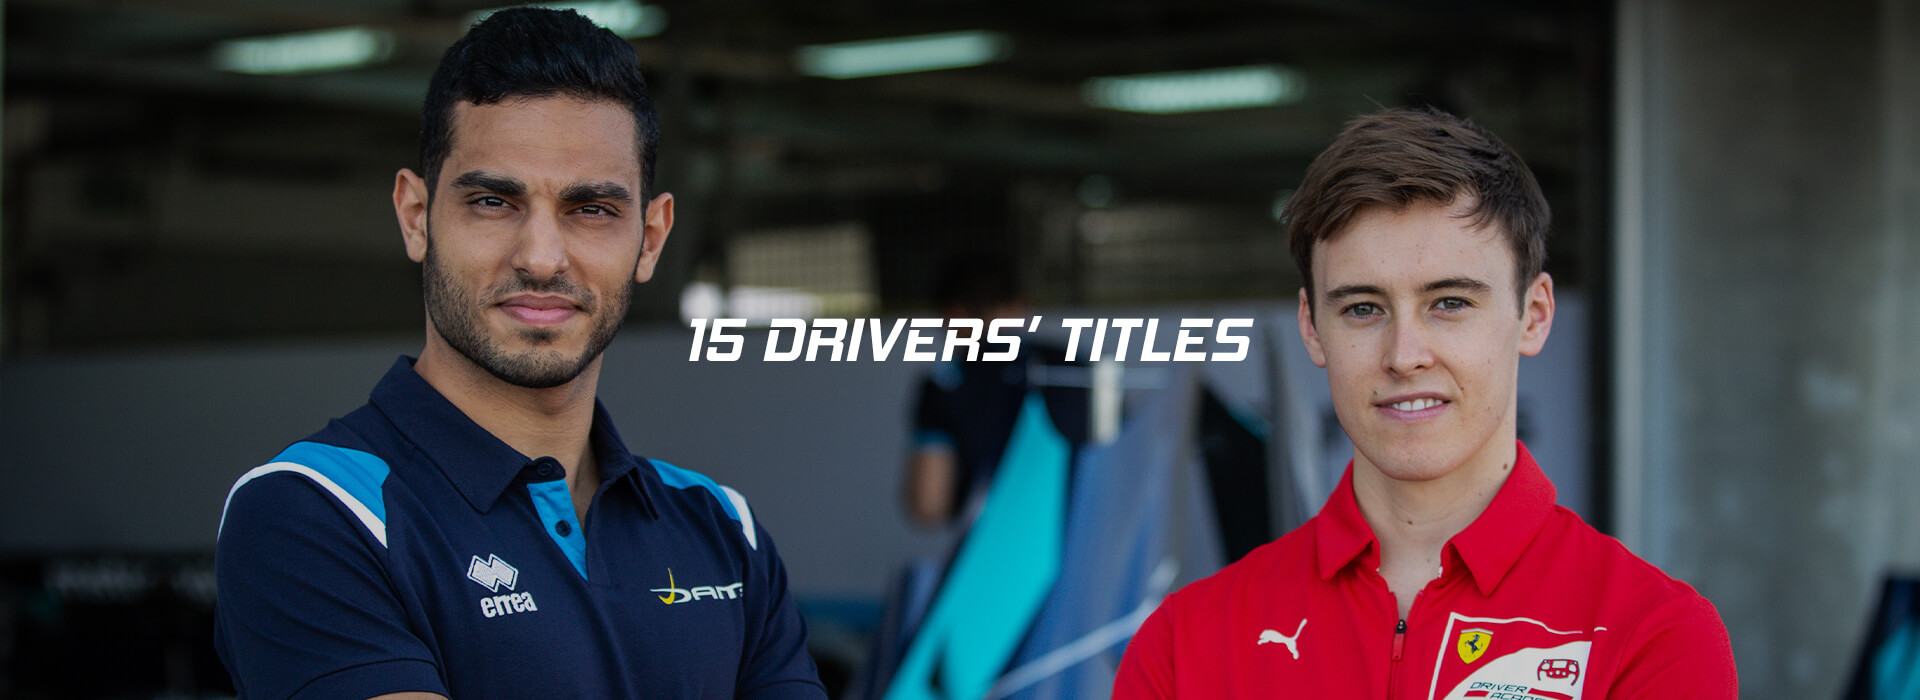 15 drivers' titles